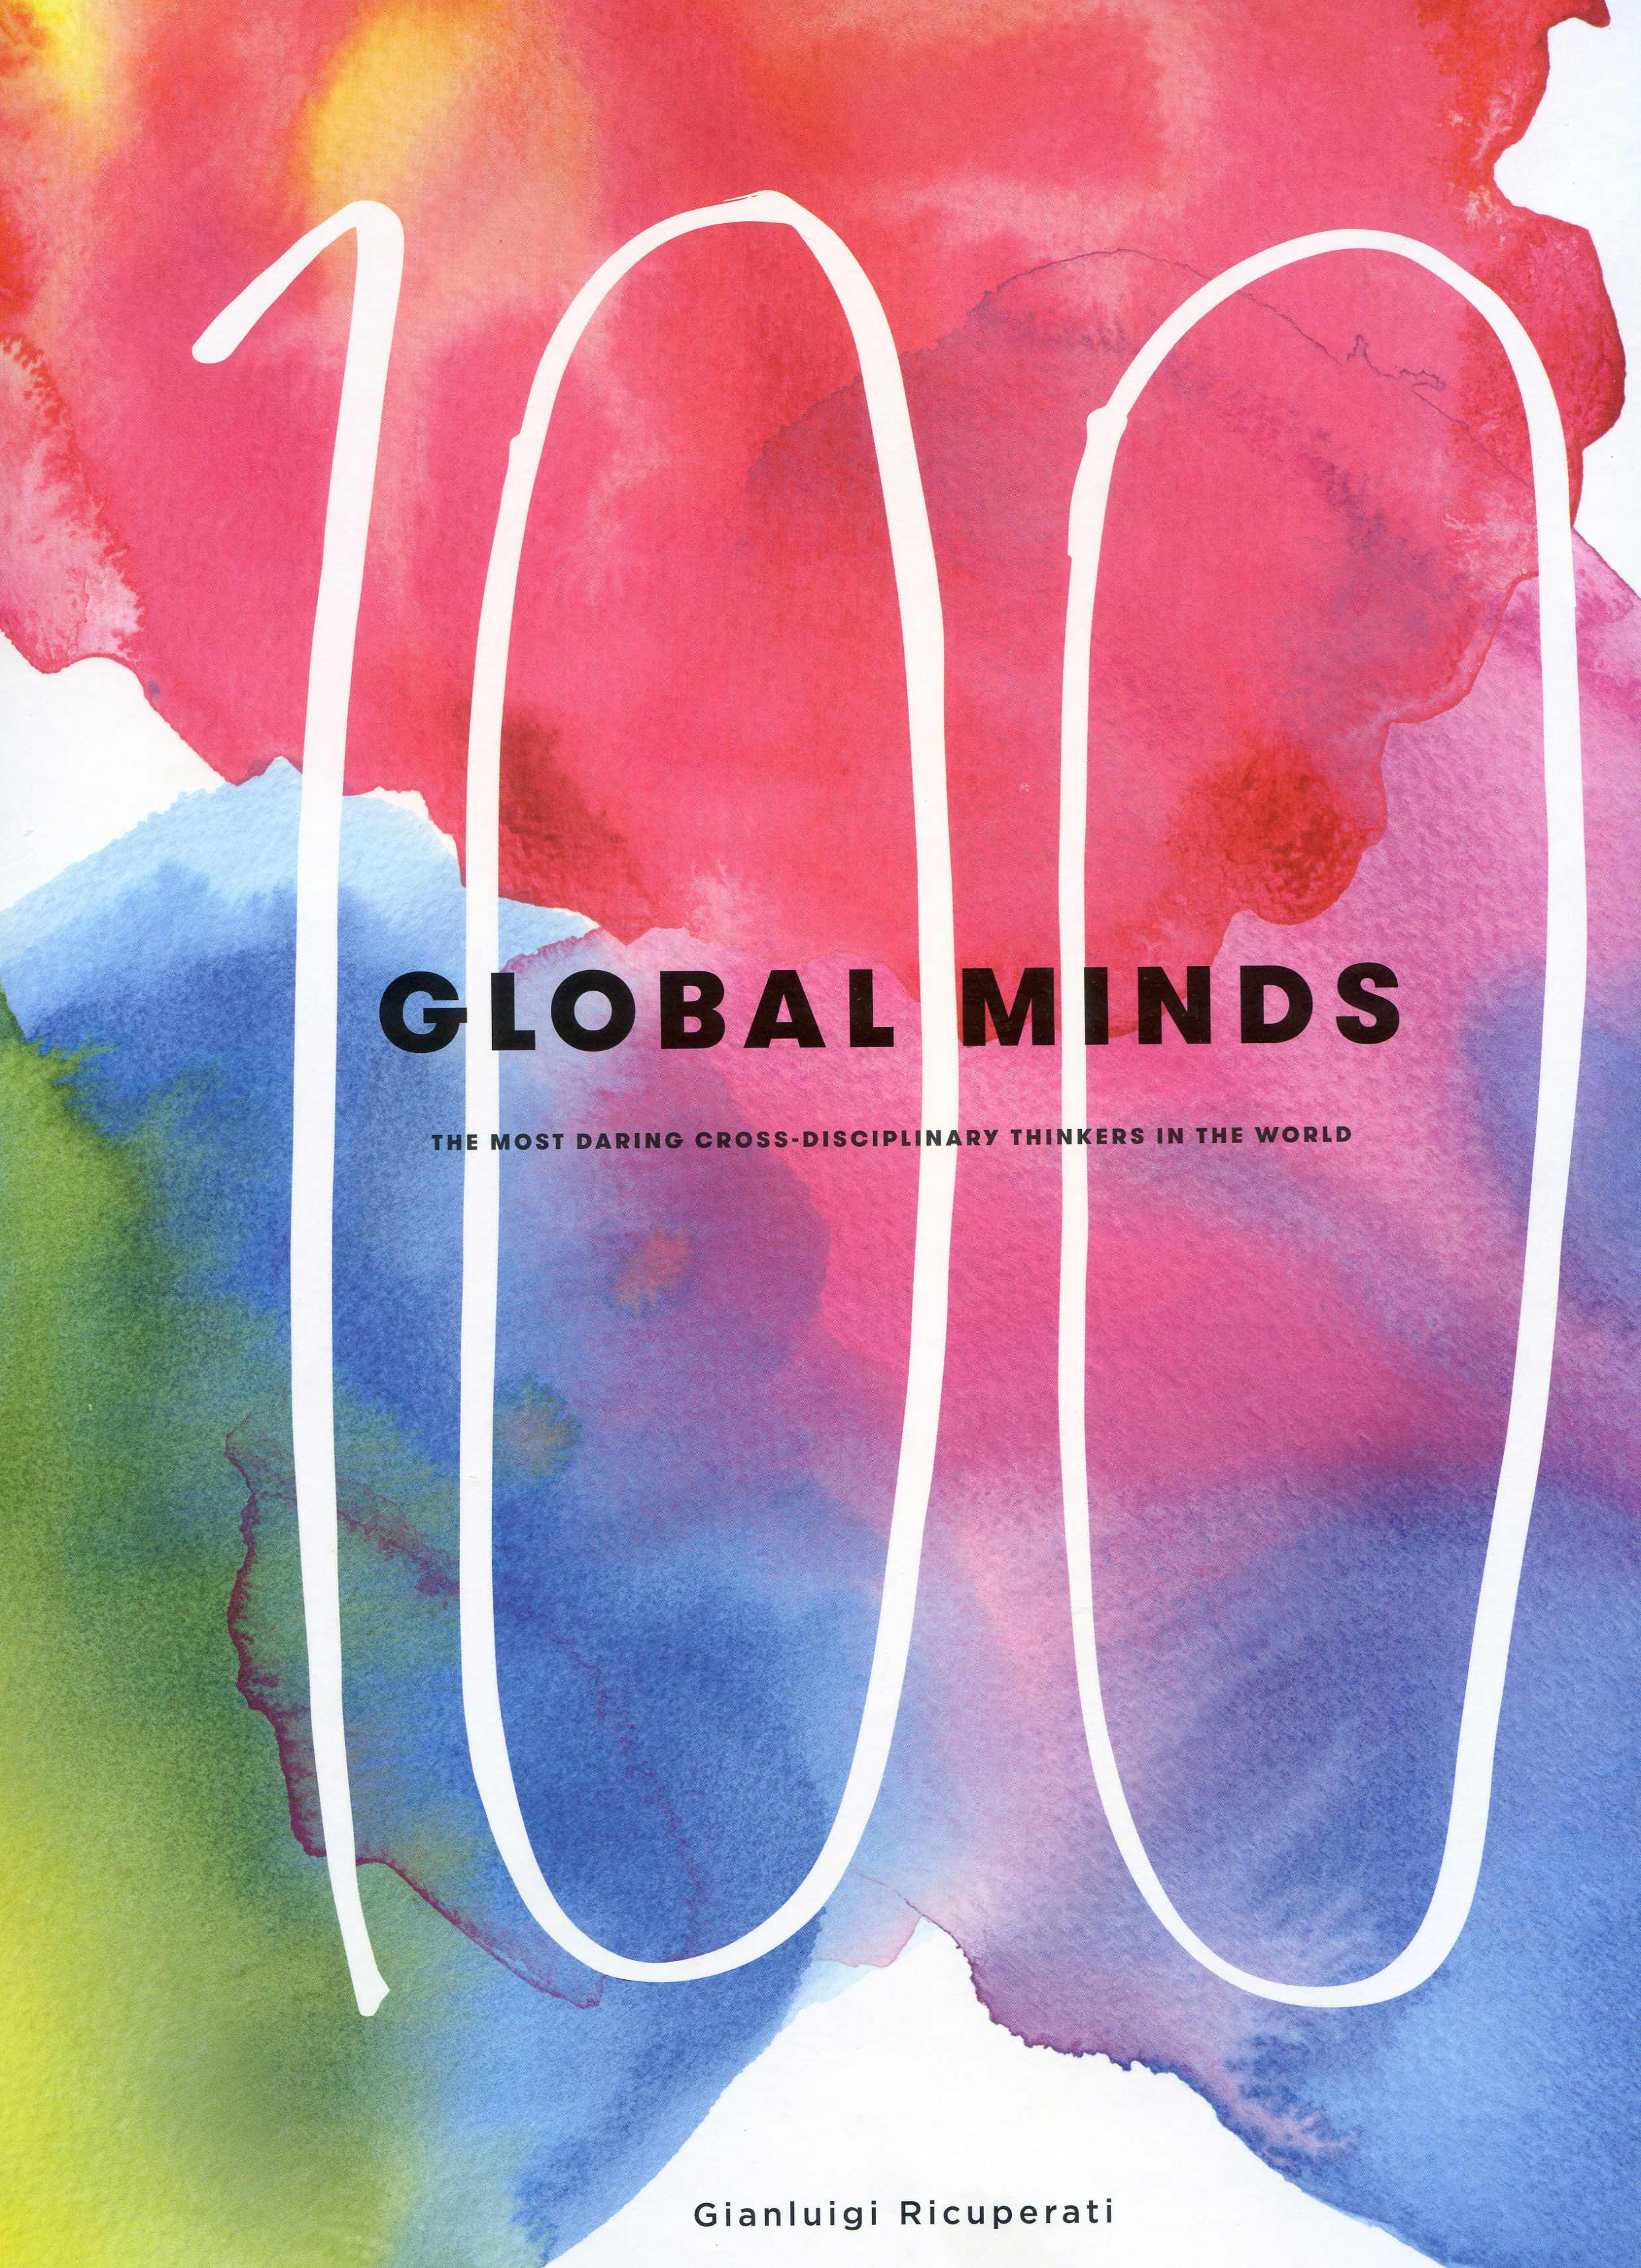 100 global minds - Julia Kristeva